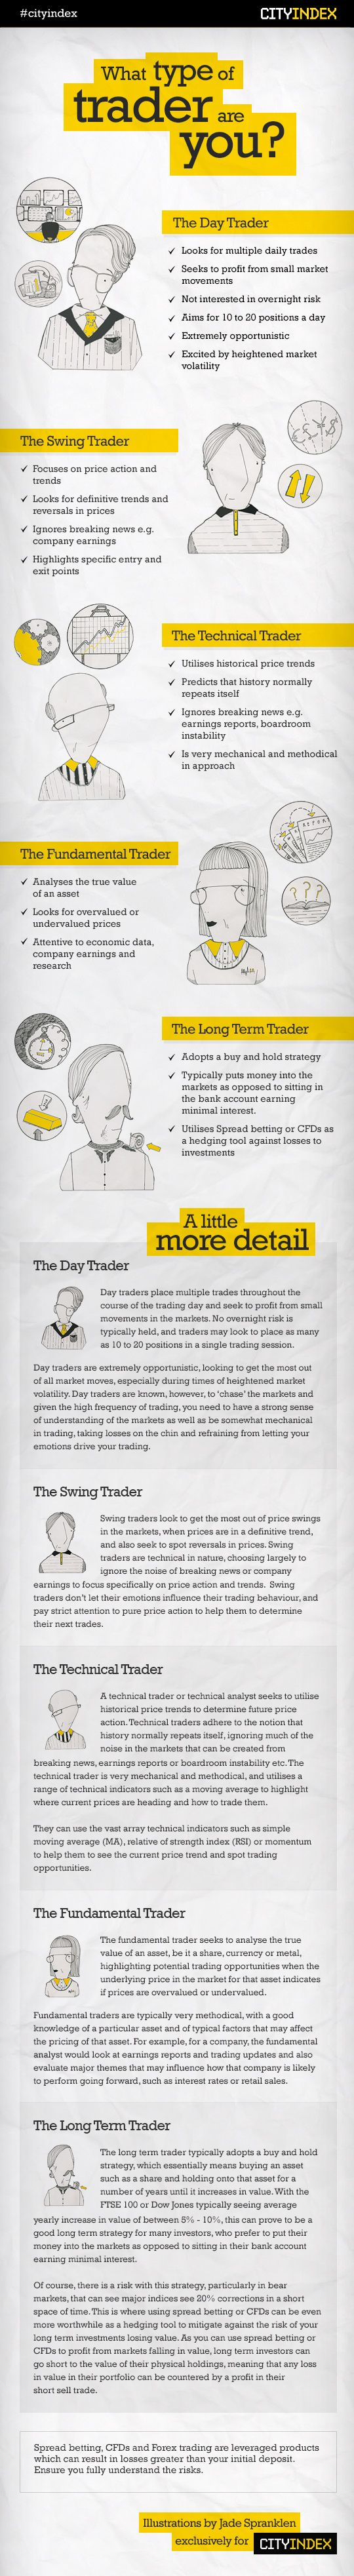 What type of Trader are you? infographic from City Index